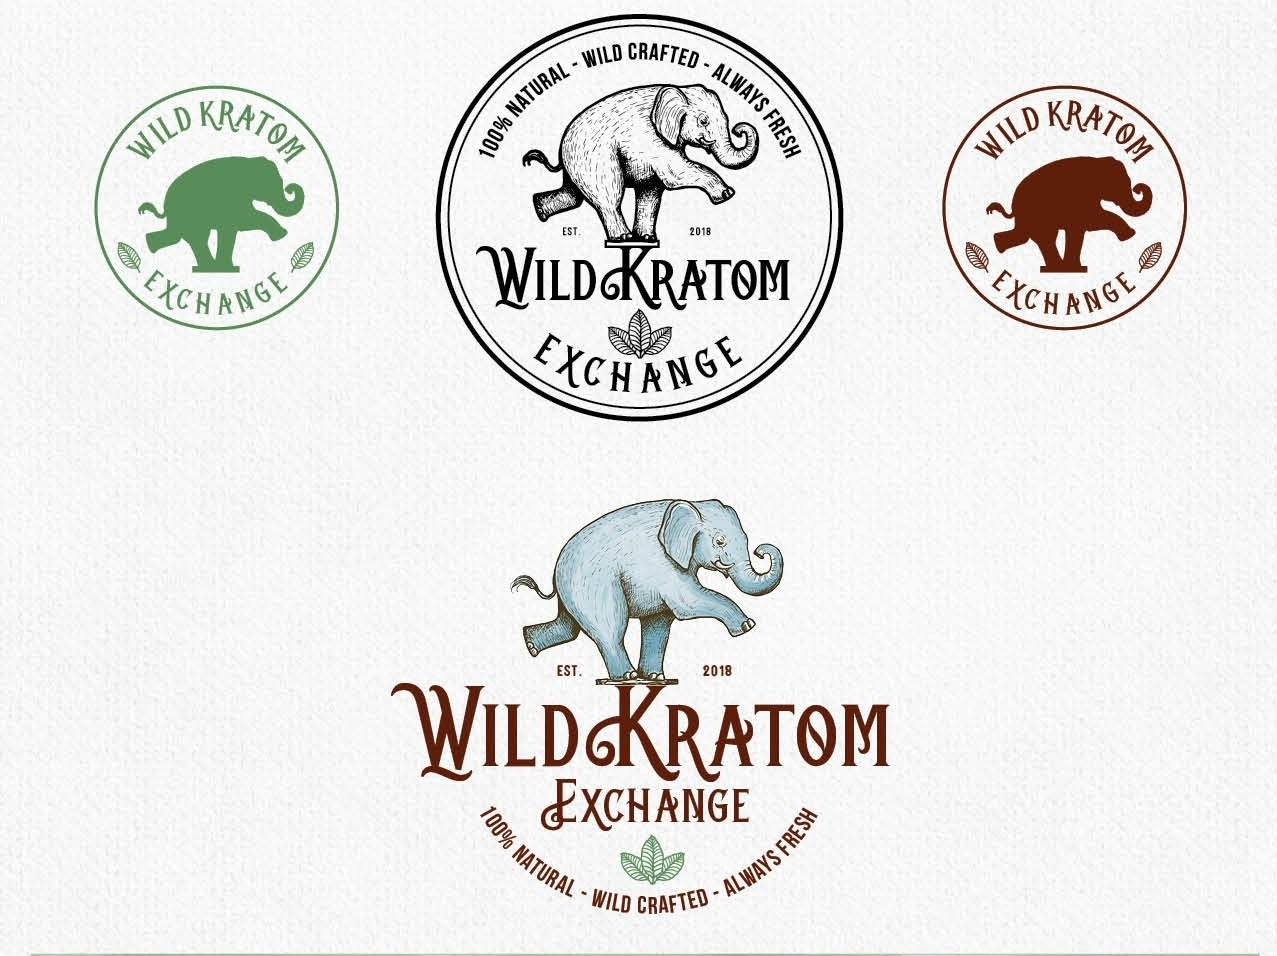 Wild Kratom Exchange logo